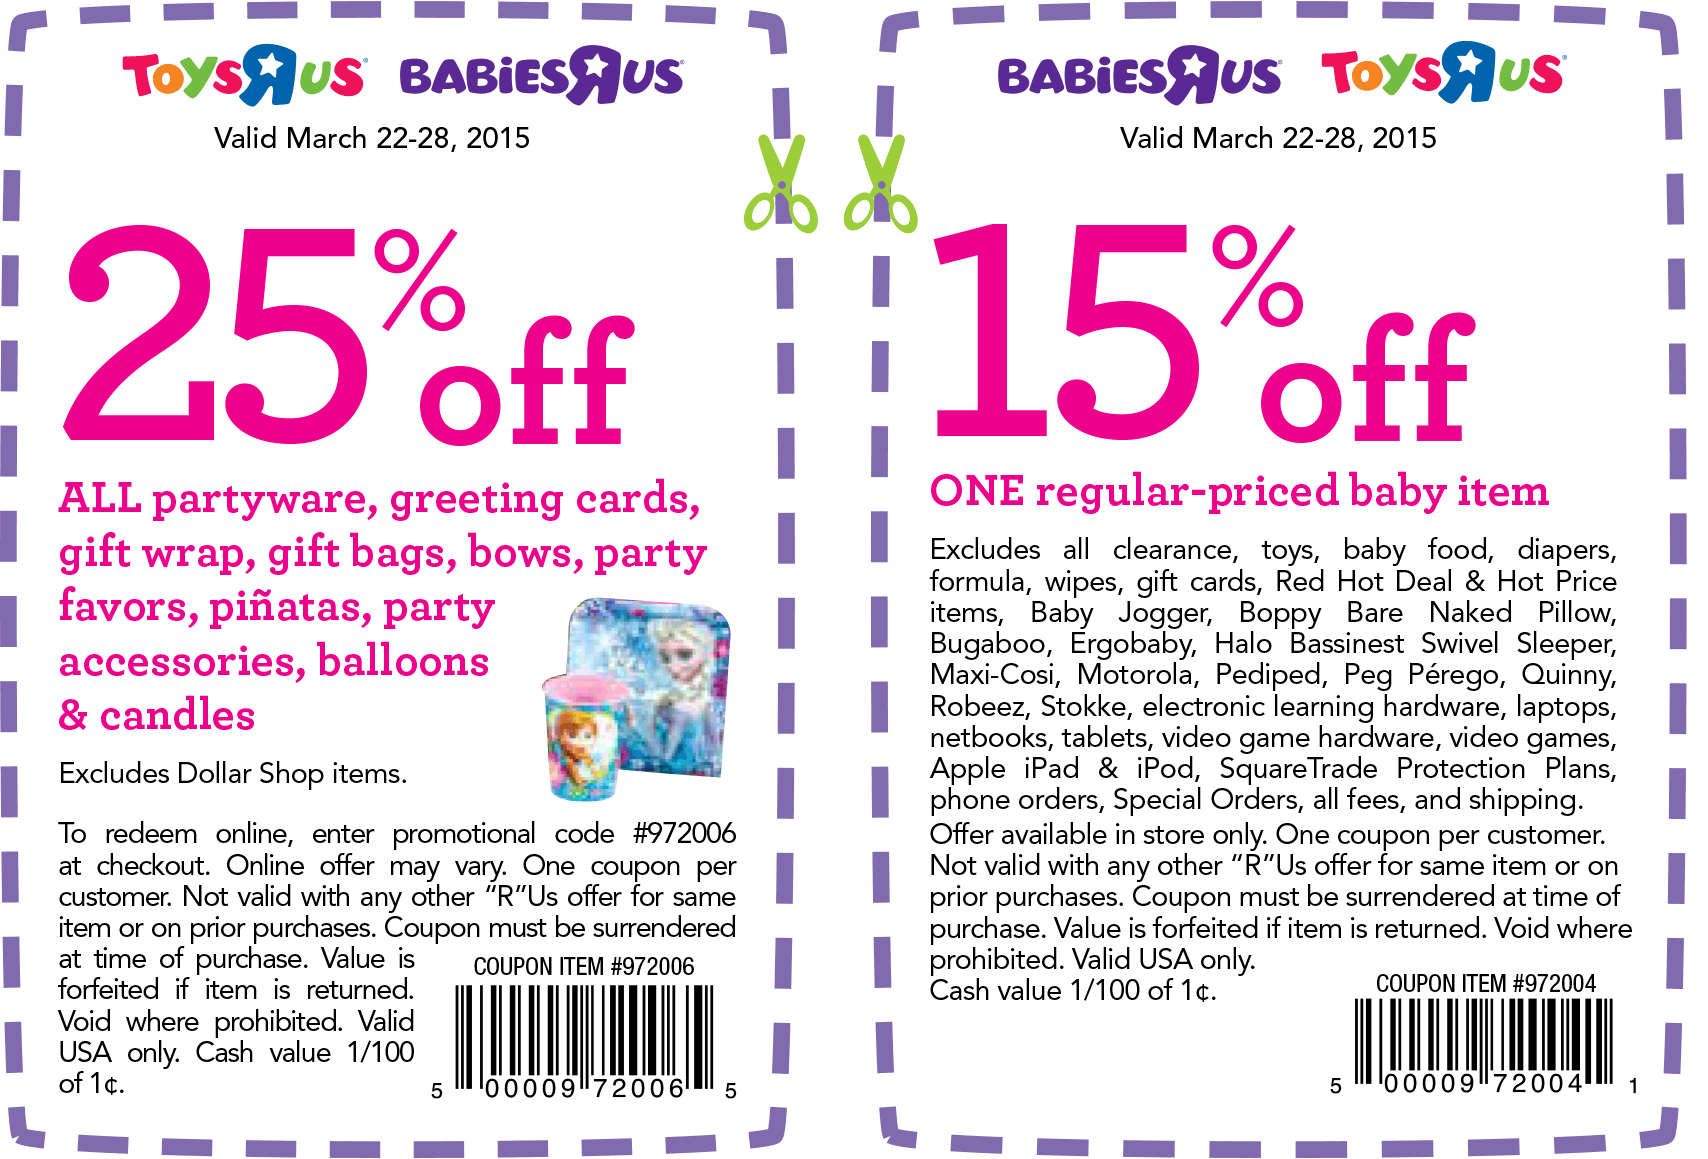 Toys R Us Coupon February 2017 25% off partyware & more at Toys R Us & Babies R Us, or online via promo code 972006